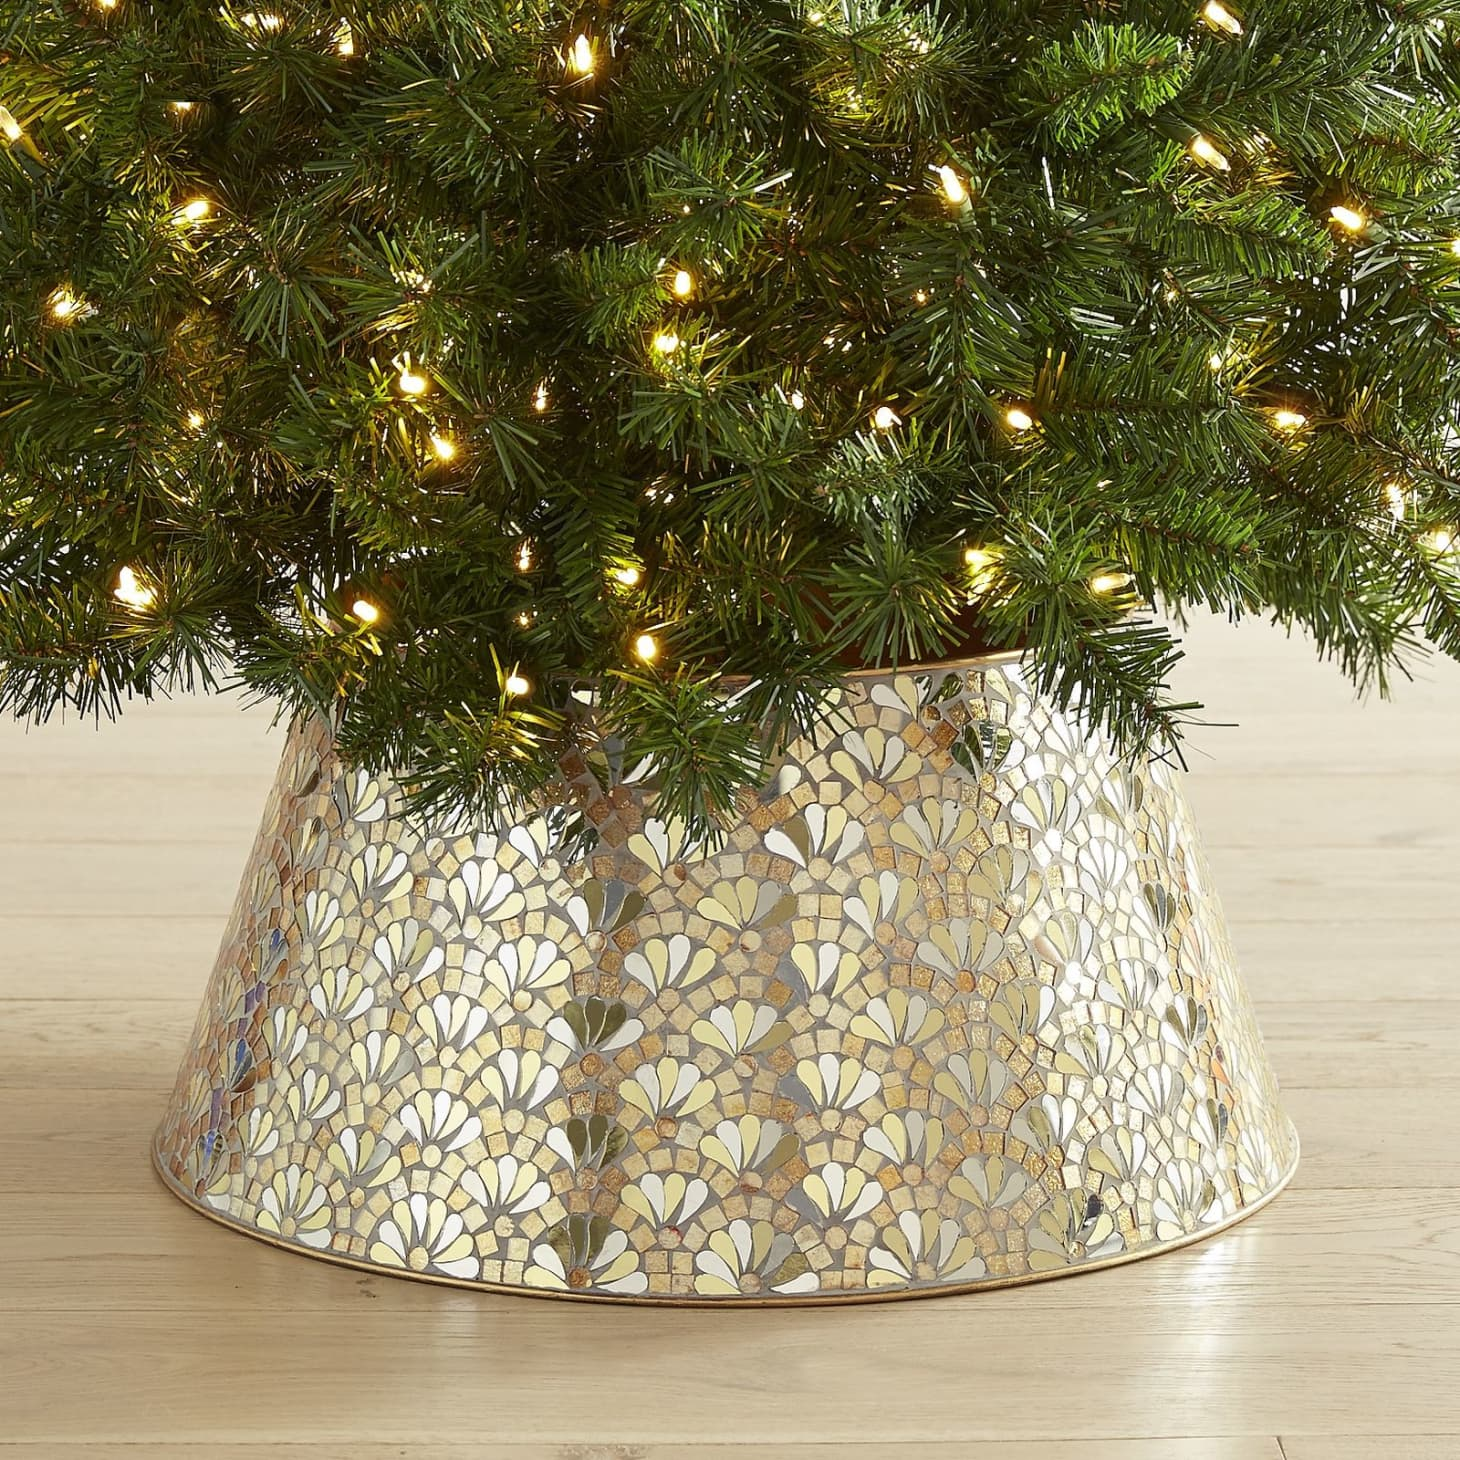 What Are Christmas Tree Collars & Where to Get Them ... - photo#2